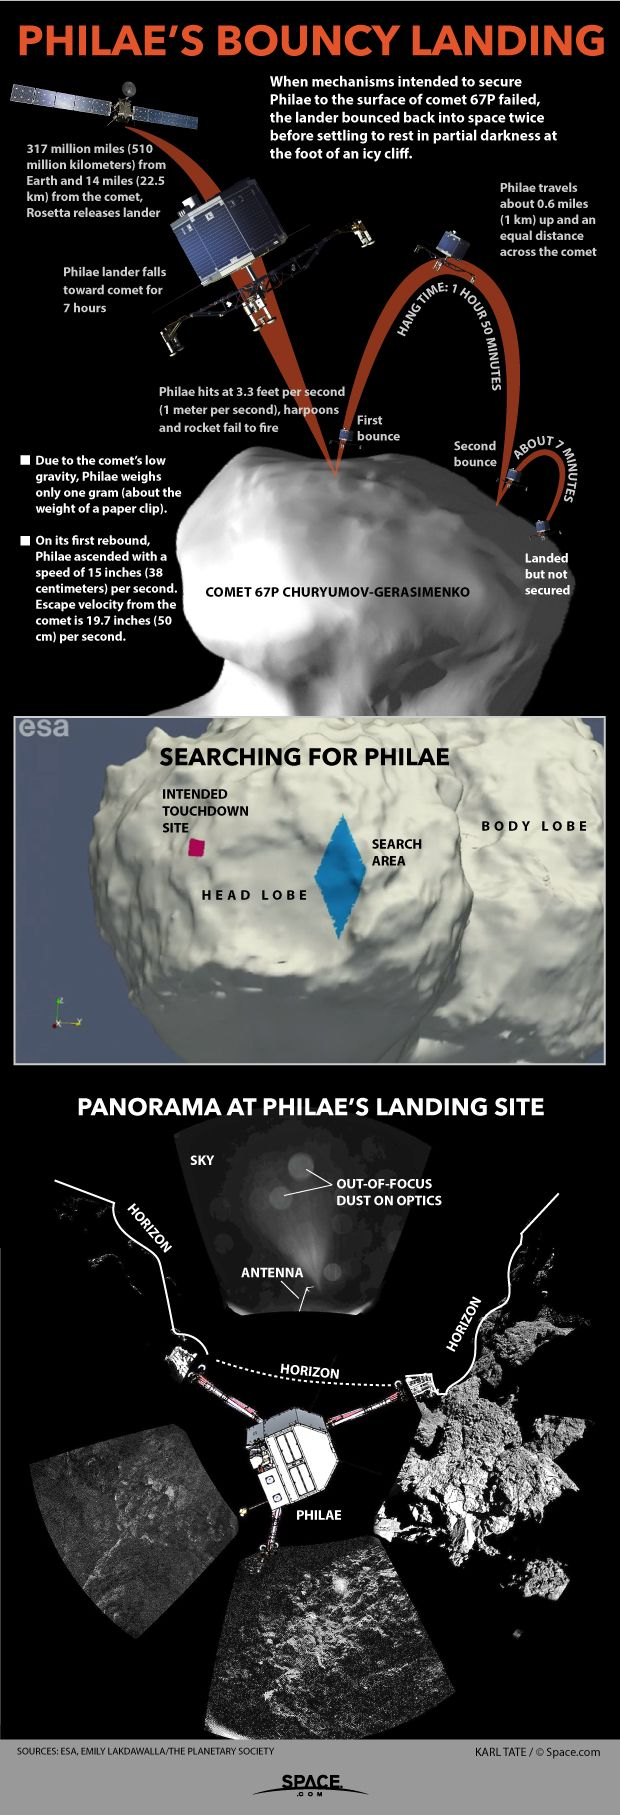 When Europe's Philae probe landed Comet 67P on Nov. 12, 2014, it bounced off with nearly enough force to drift away into space. - Credit: Karl Tate, Infographics Artist